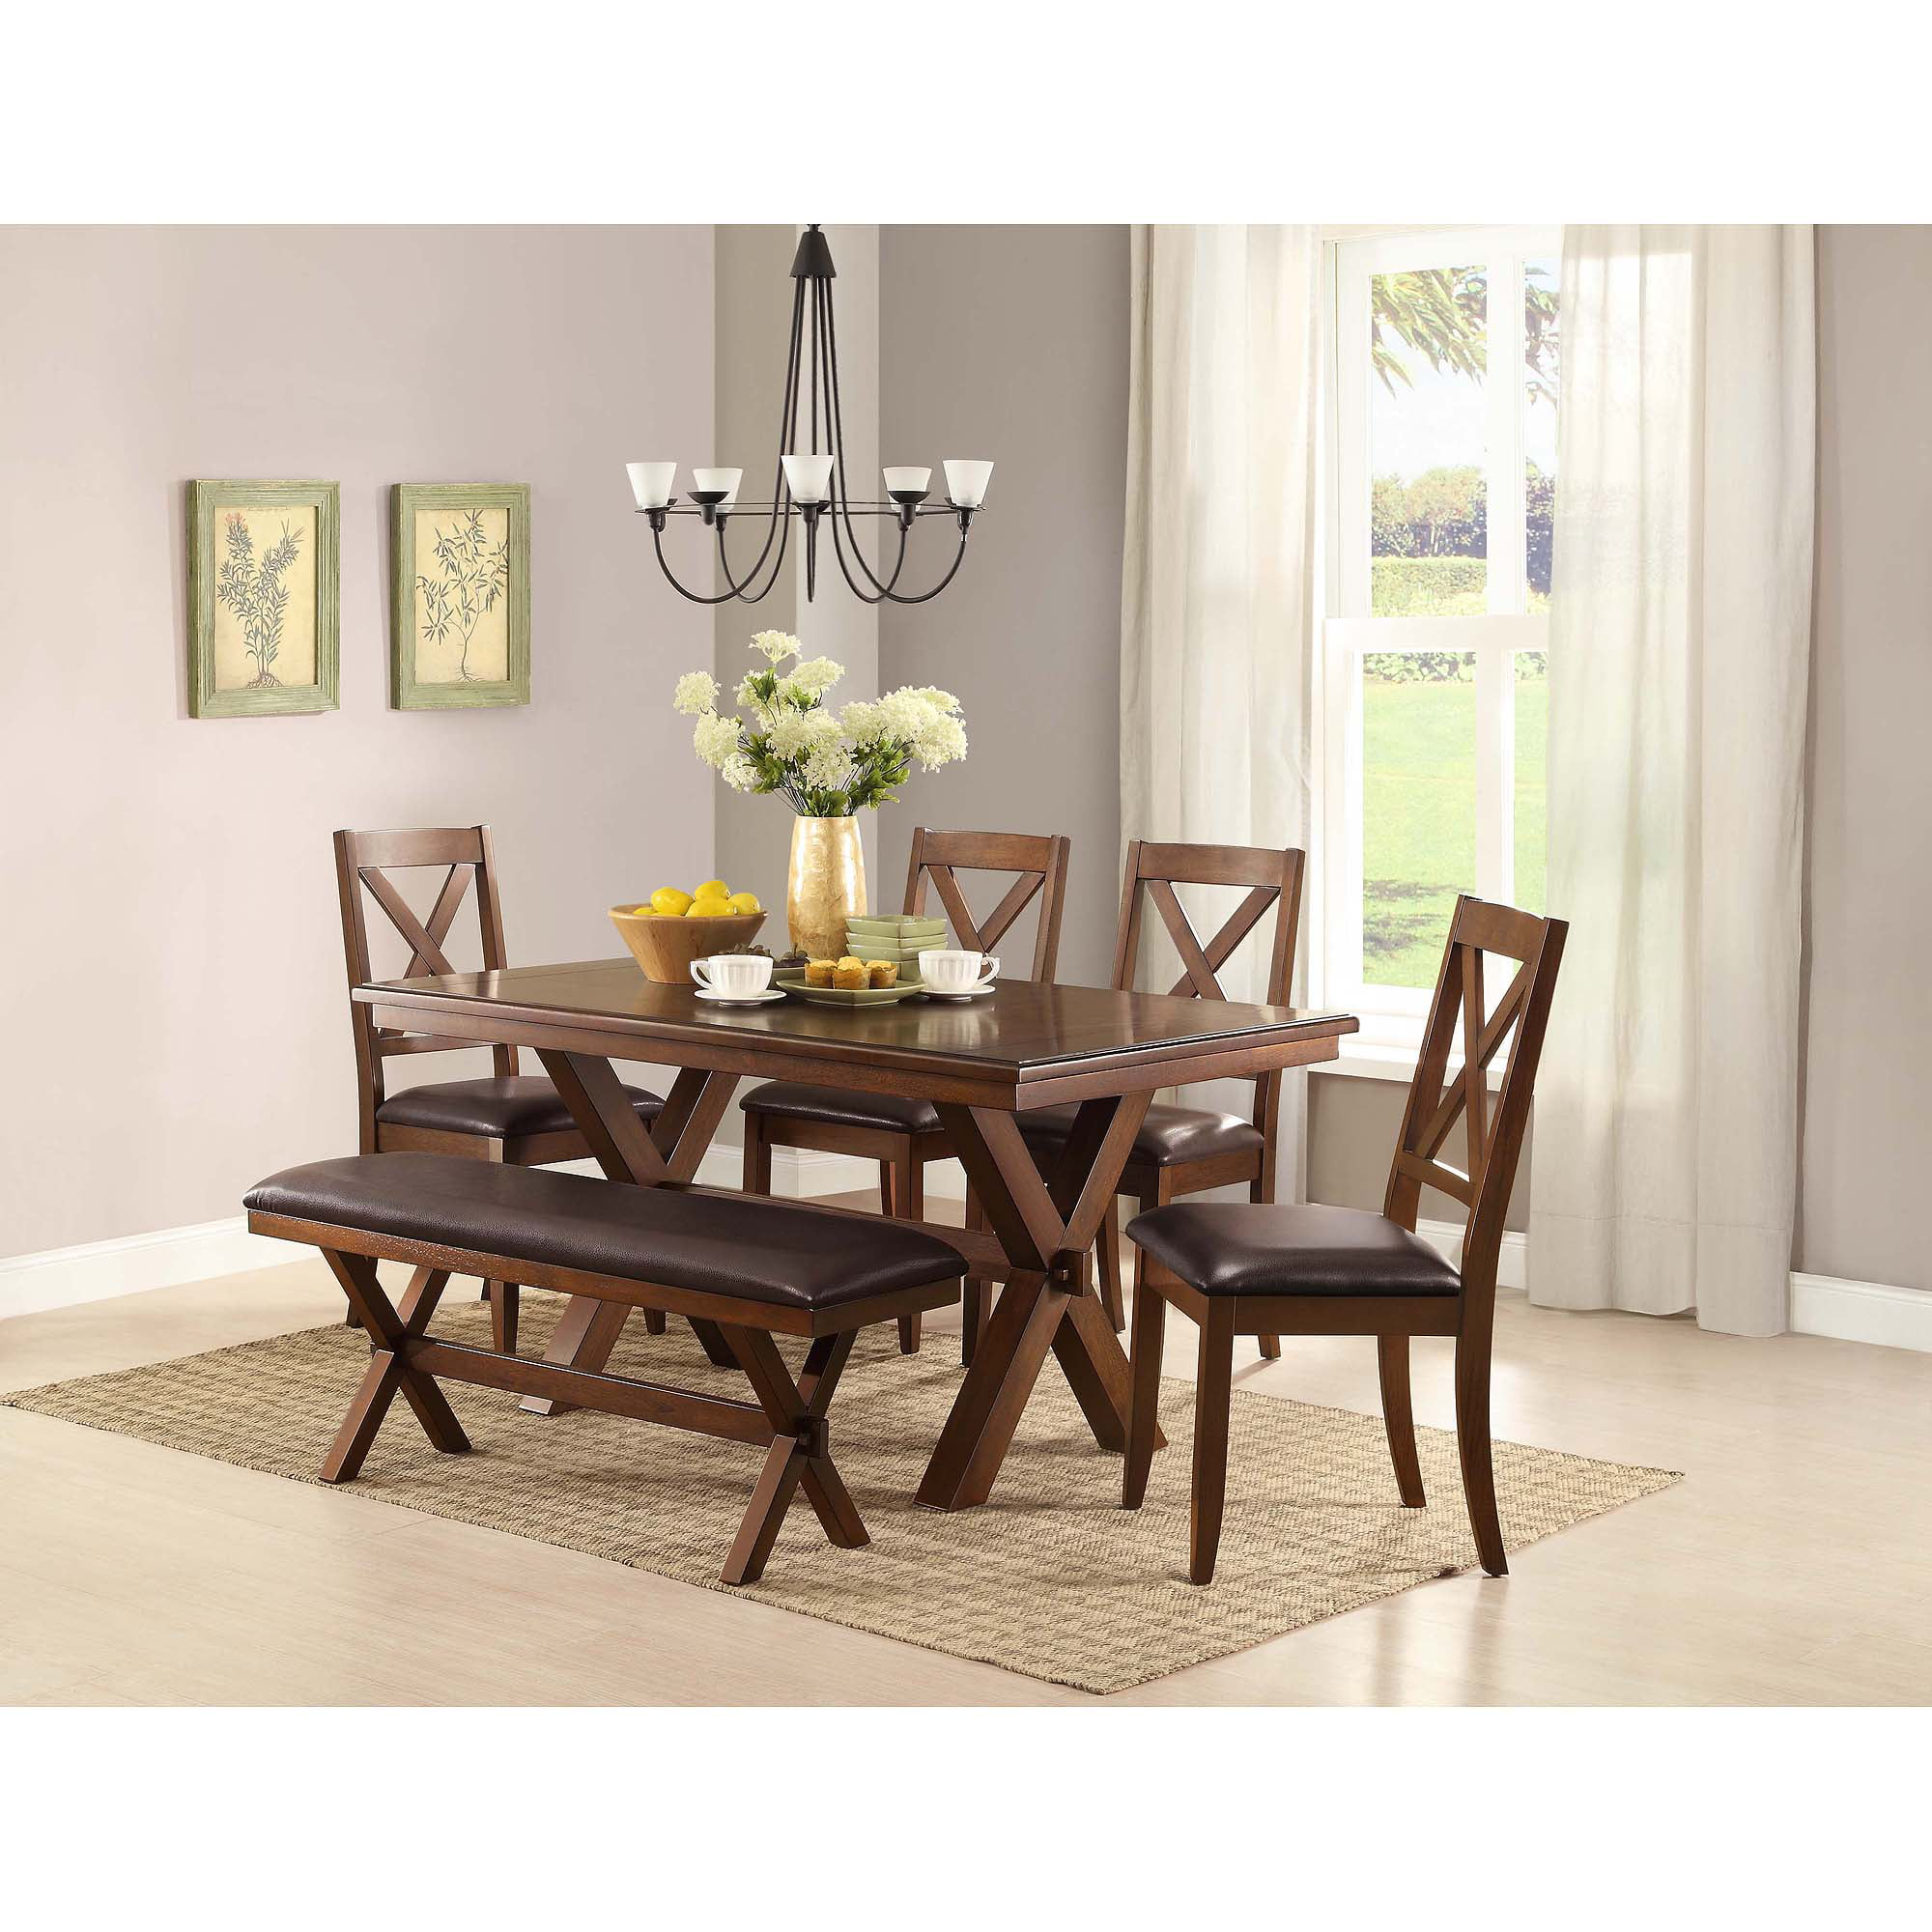 better homes and gardens maddox crossing dining table brown walmartcom